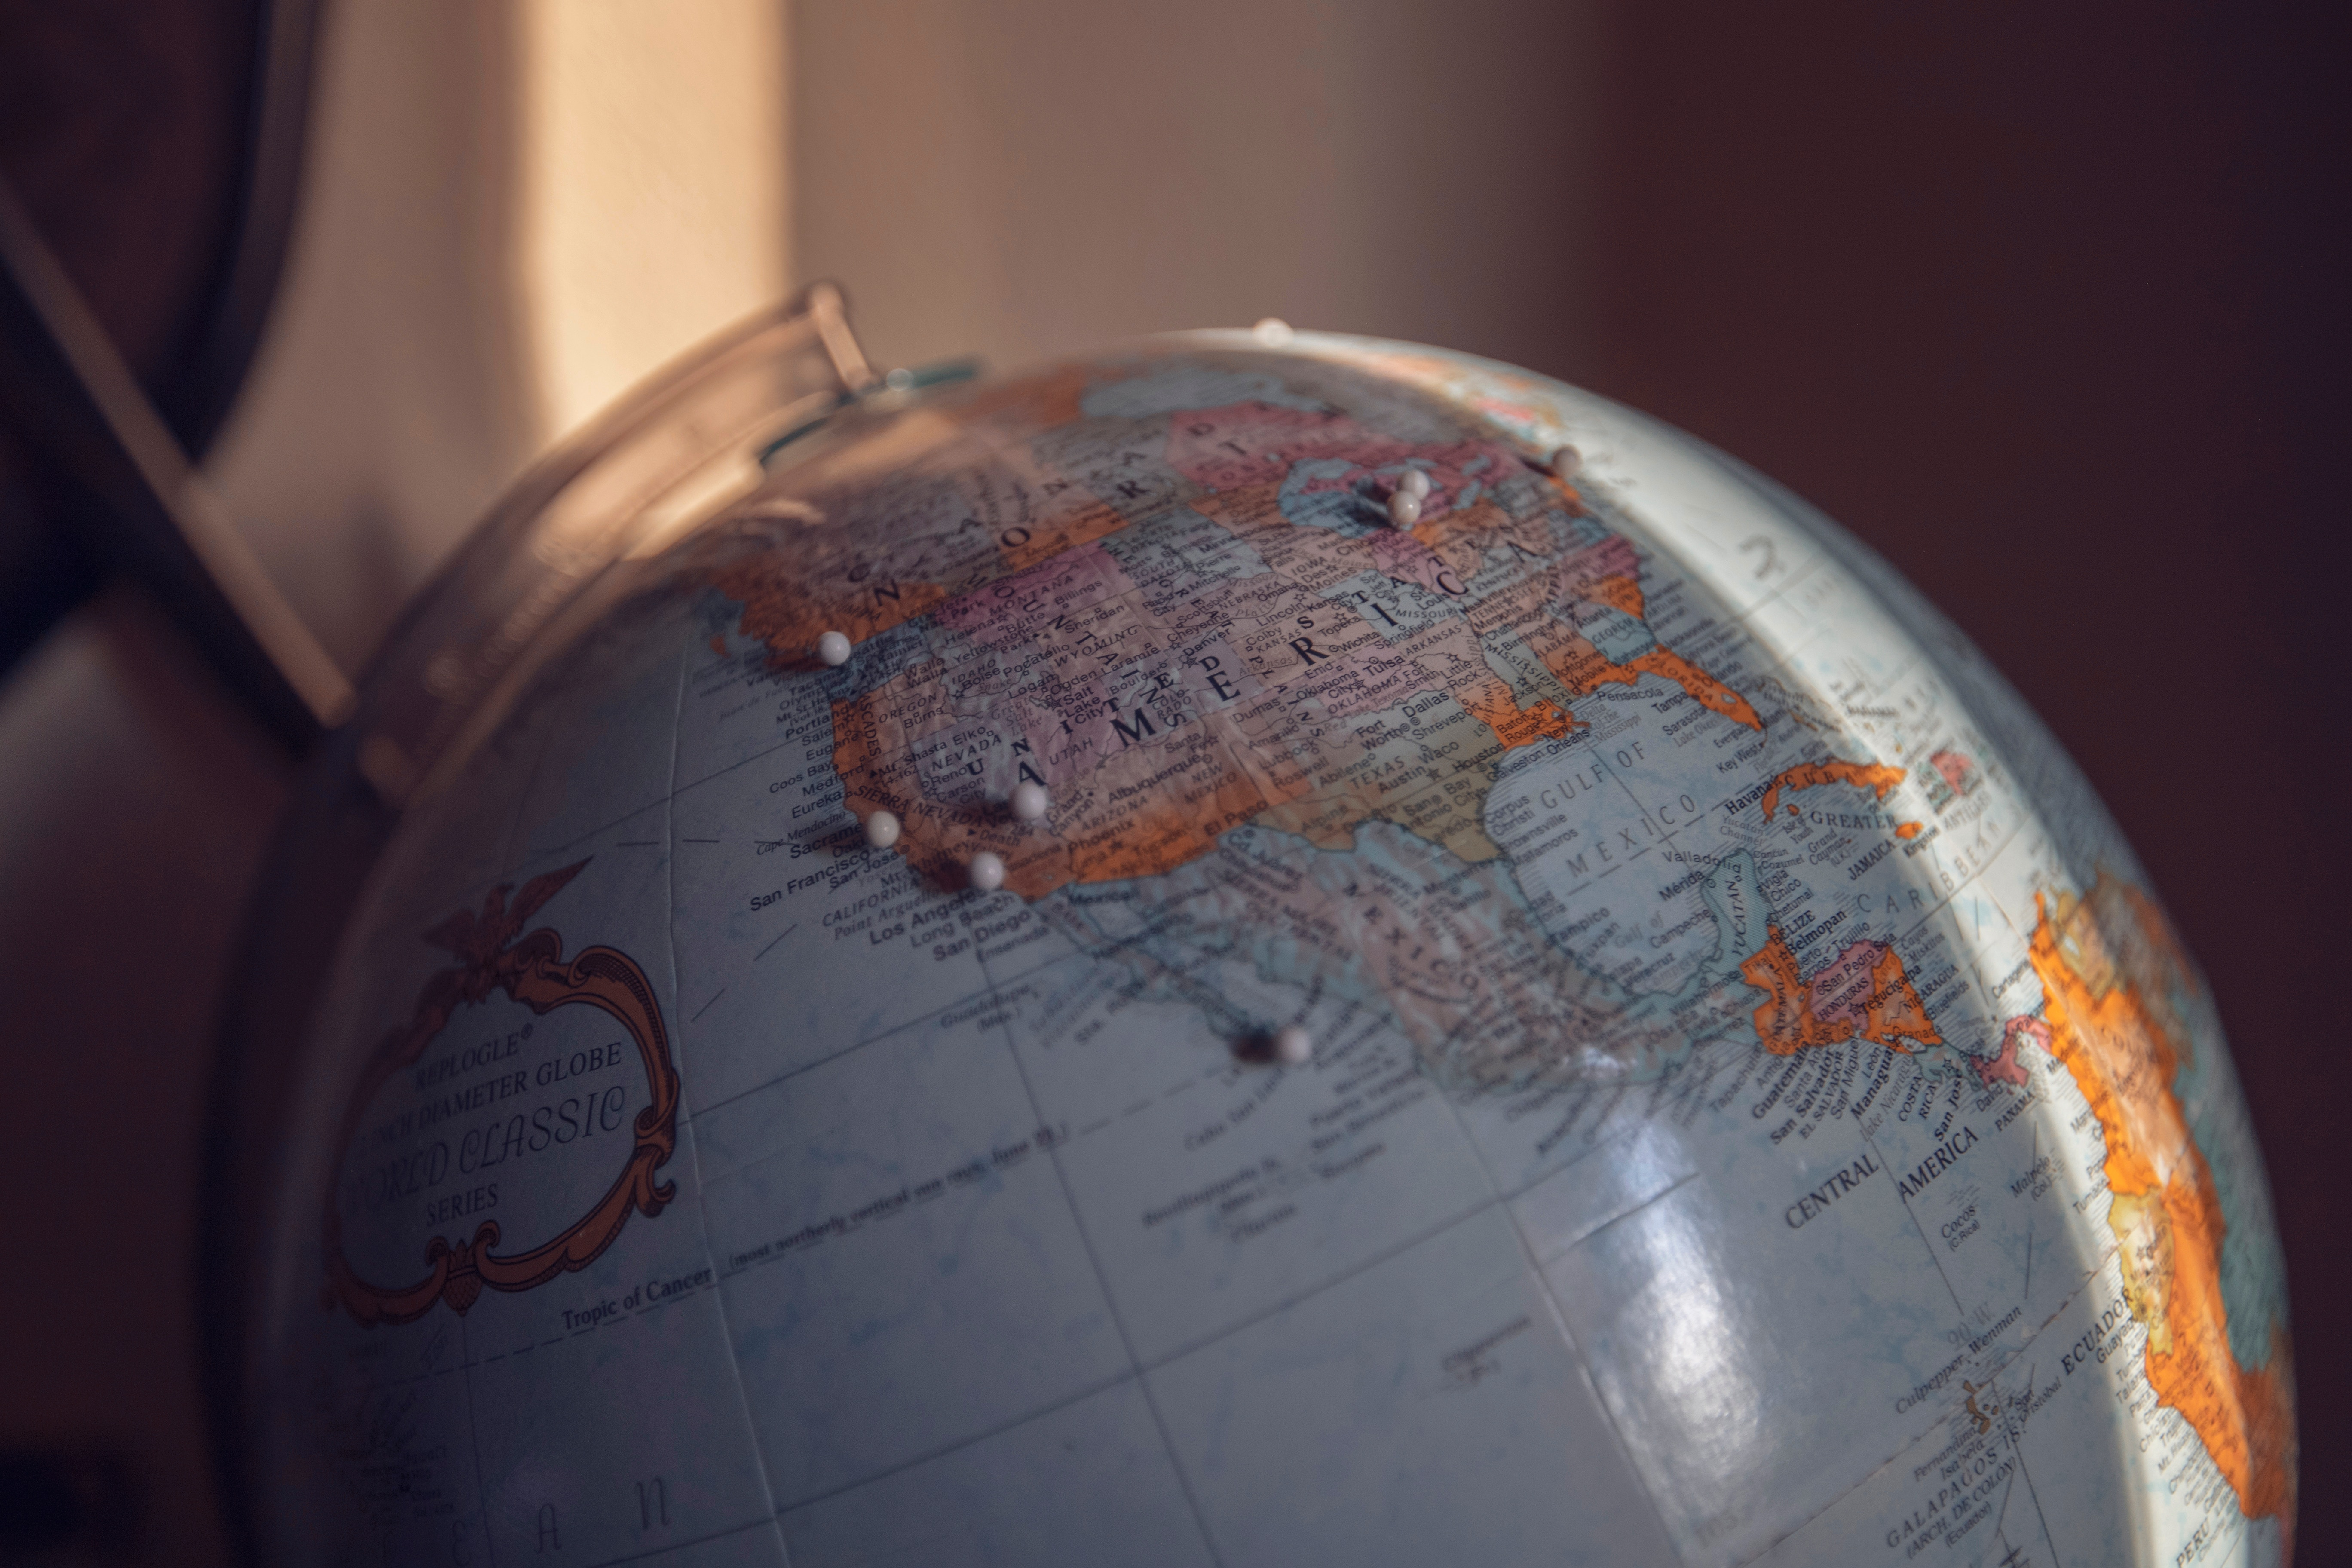 A globe with pins stuck in different locations